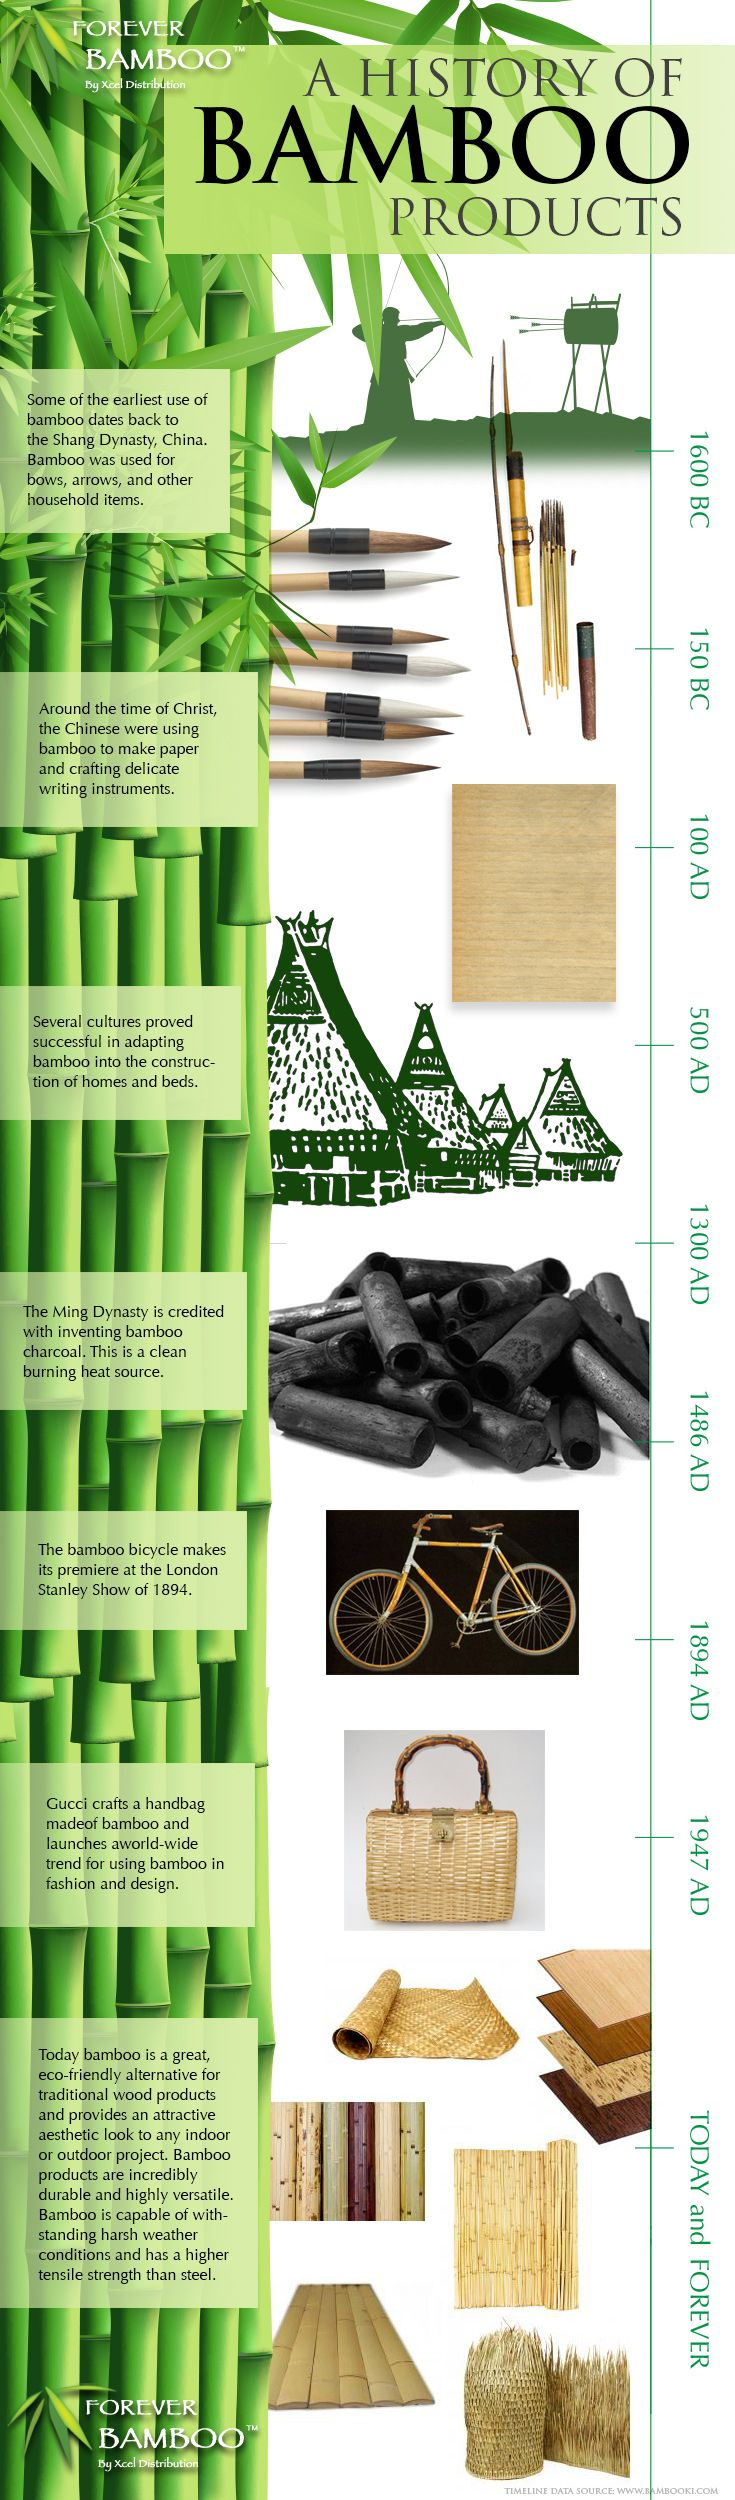 How well do you know bamboo?